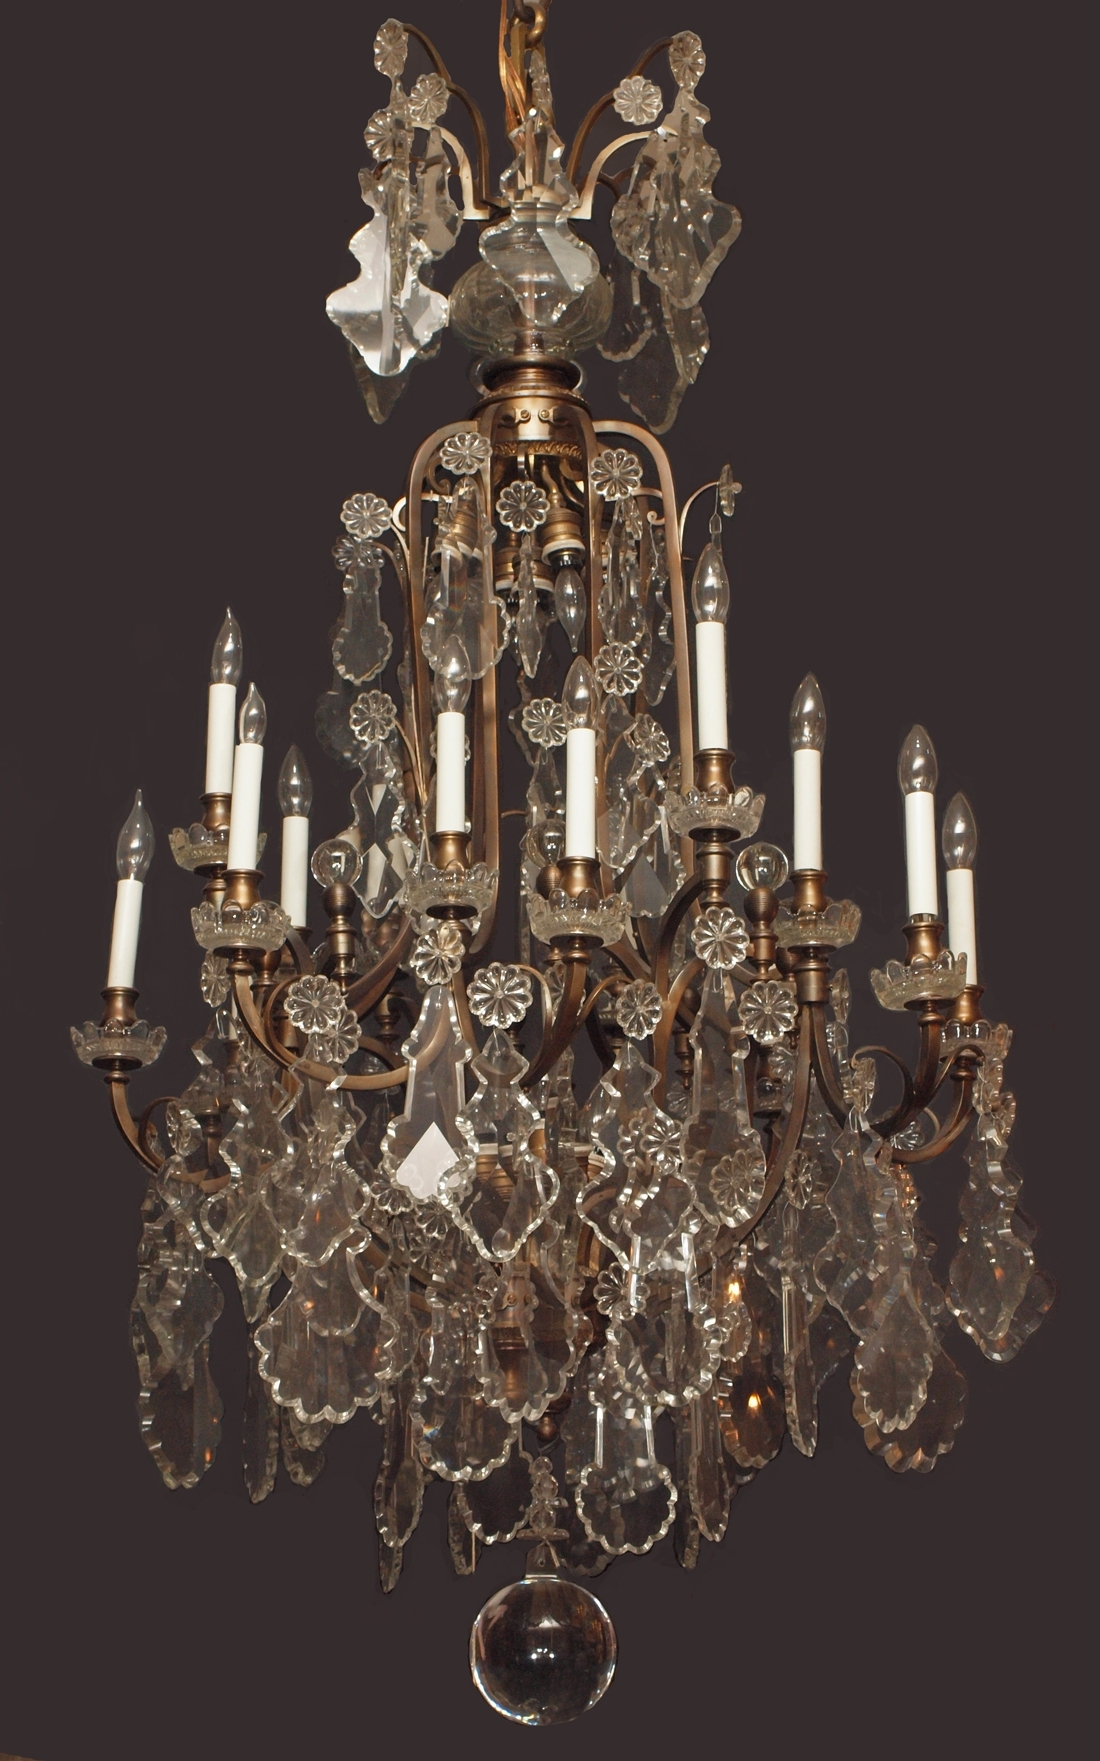 Antique French Chandeliers Throughout Trendy Chandeliers (View 10 of 15)